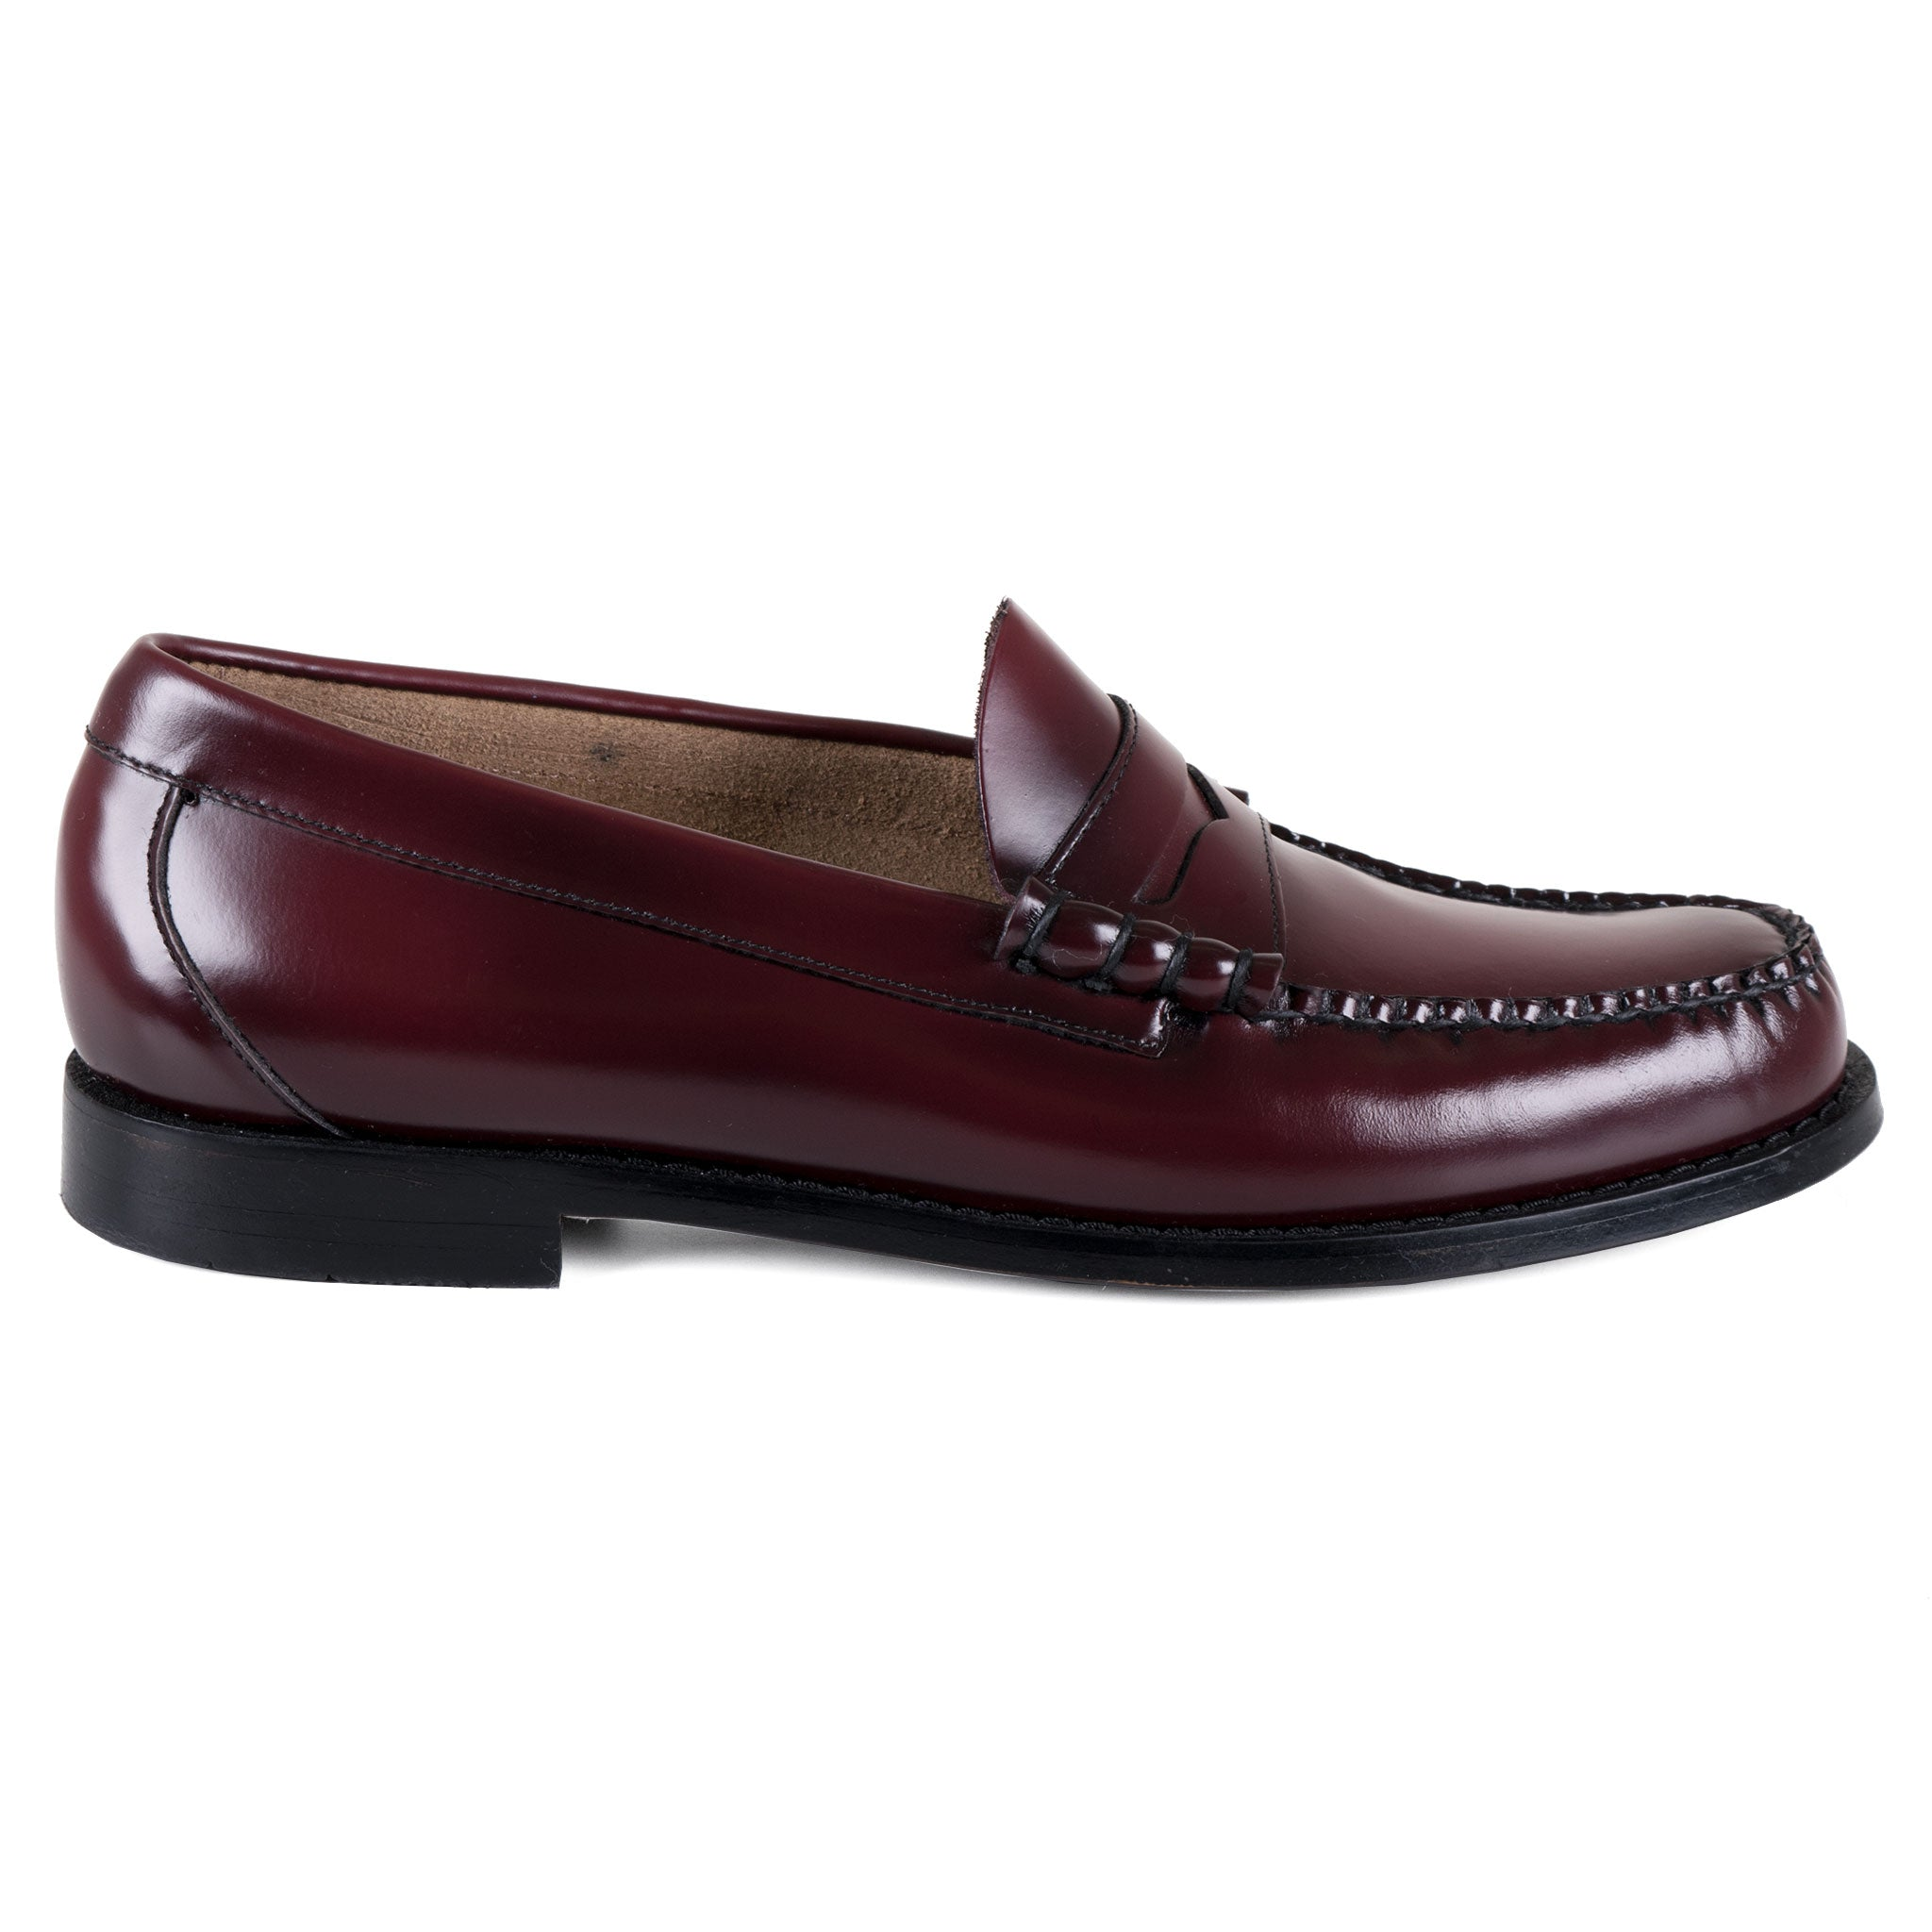 GH Bass Penny Loafer in Weinrot